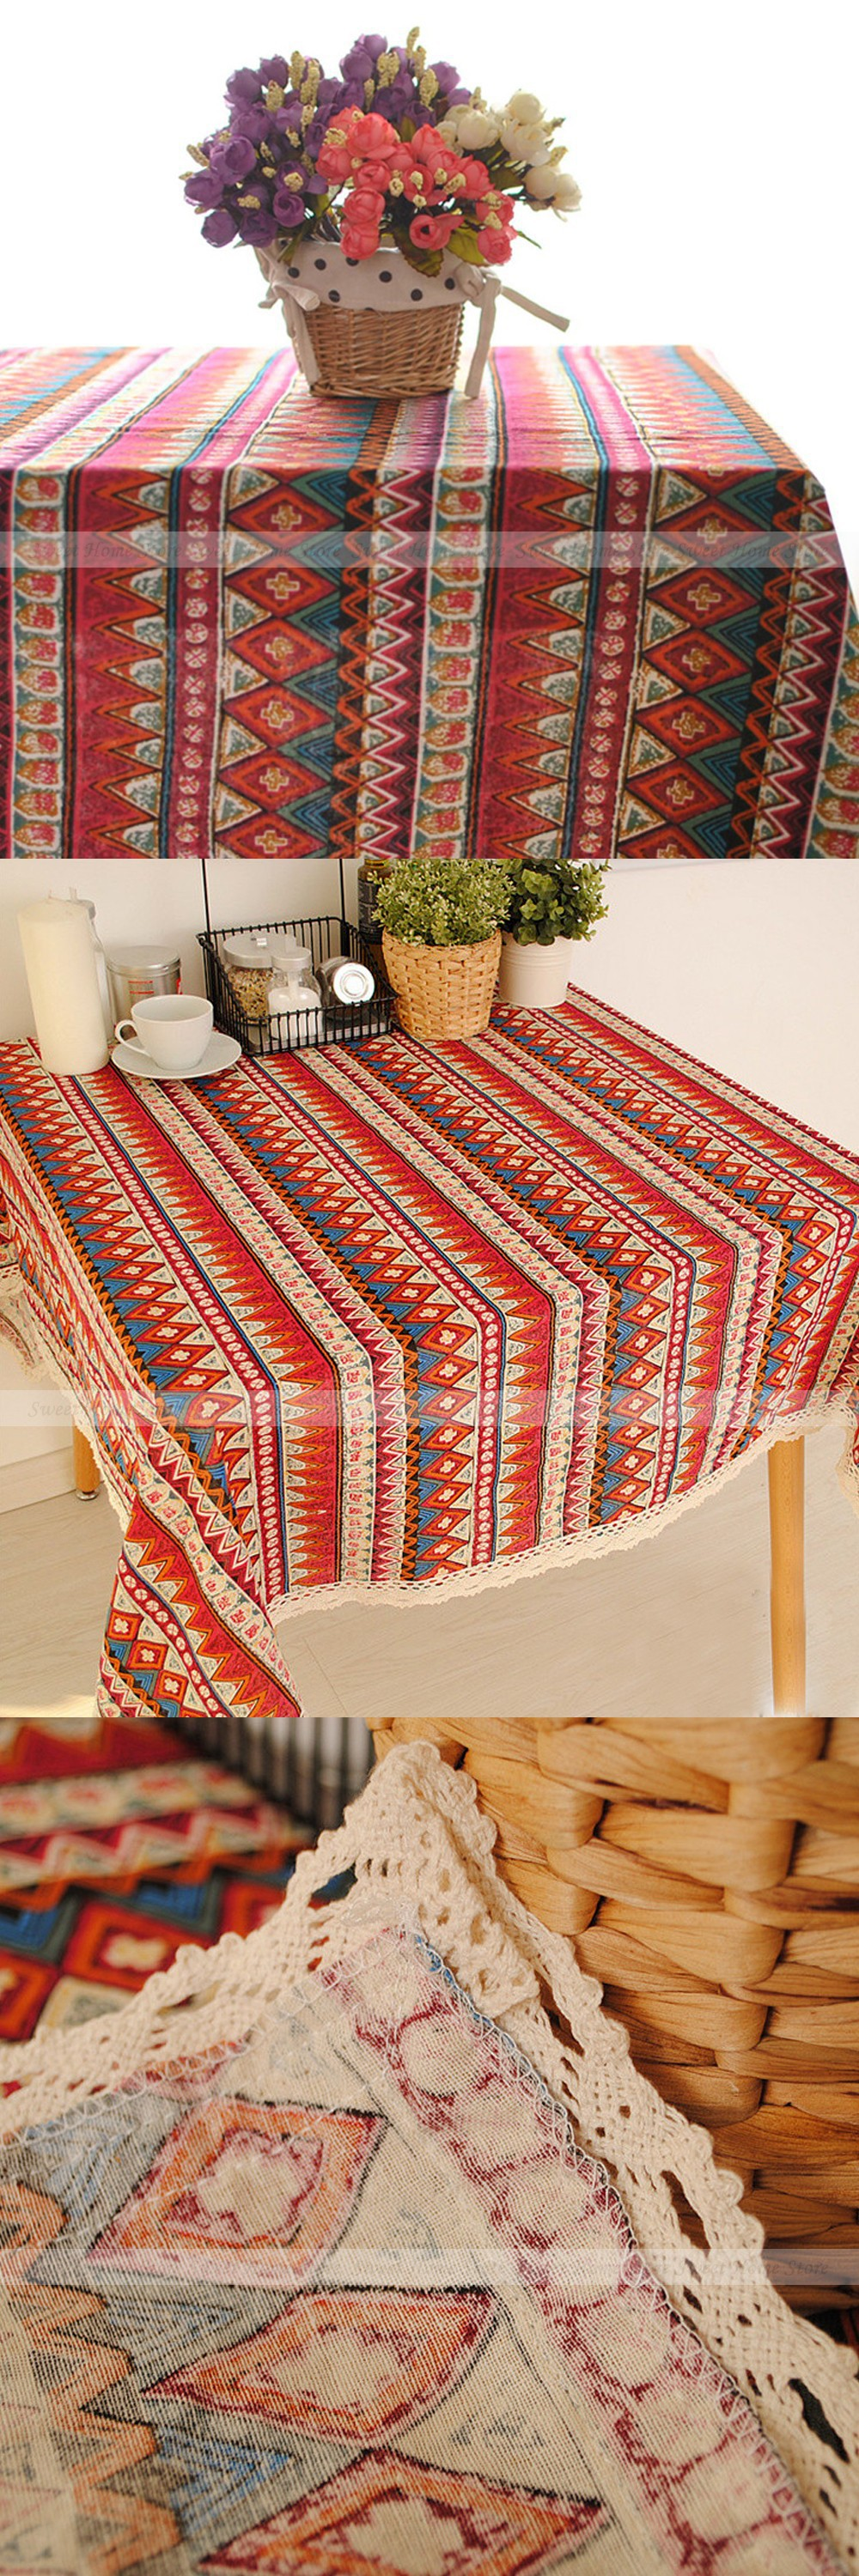 Bohemian style red lace tablecloth restaurant tea bedside table bohemian style red lace tablecloth restaurant tea bedside table cover overlay 60x60cm wedding banquet party home decor watchthetrailerfo